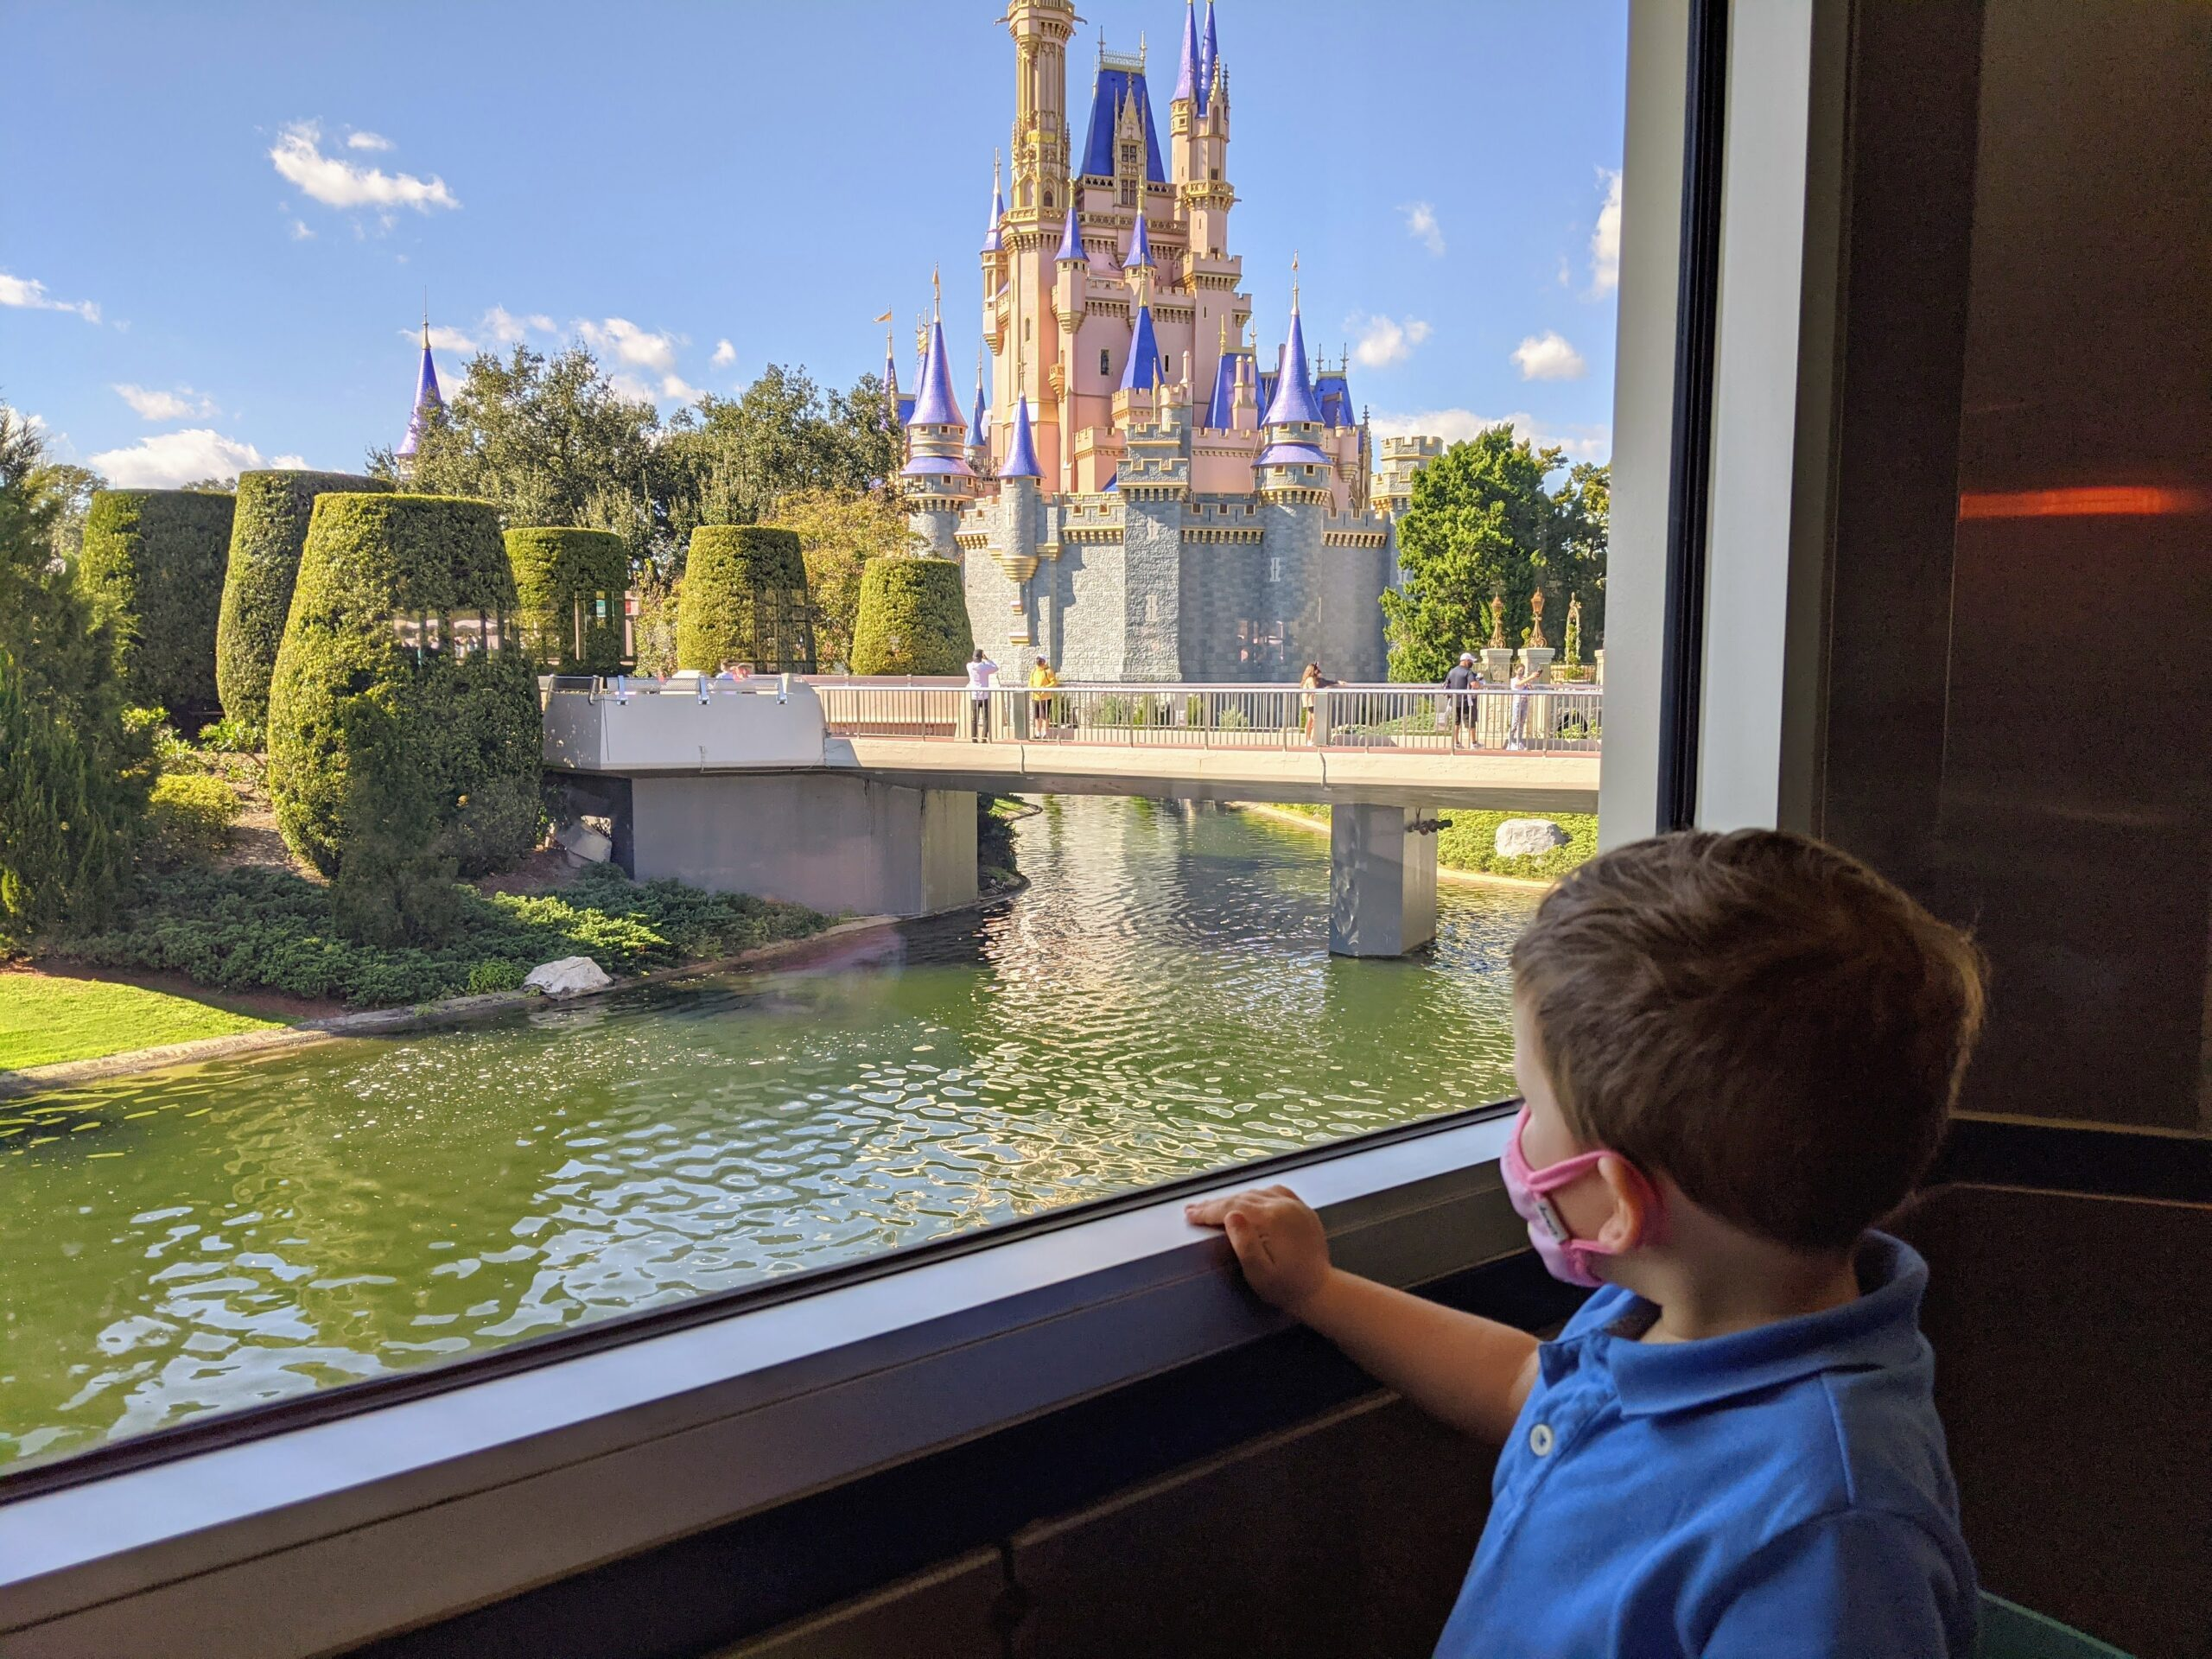 View of Cinderella's Castle from Cosmic Ray's Starlight Cafe